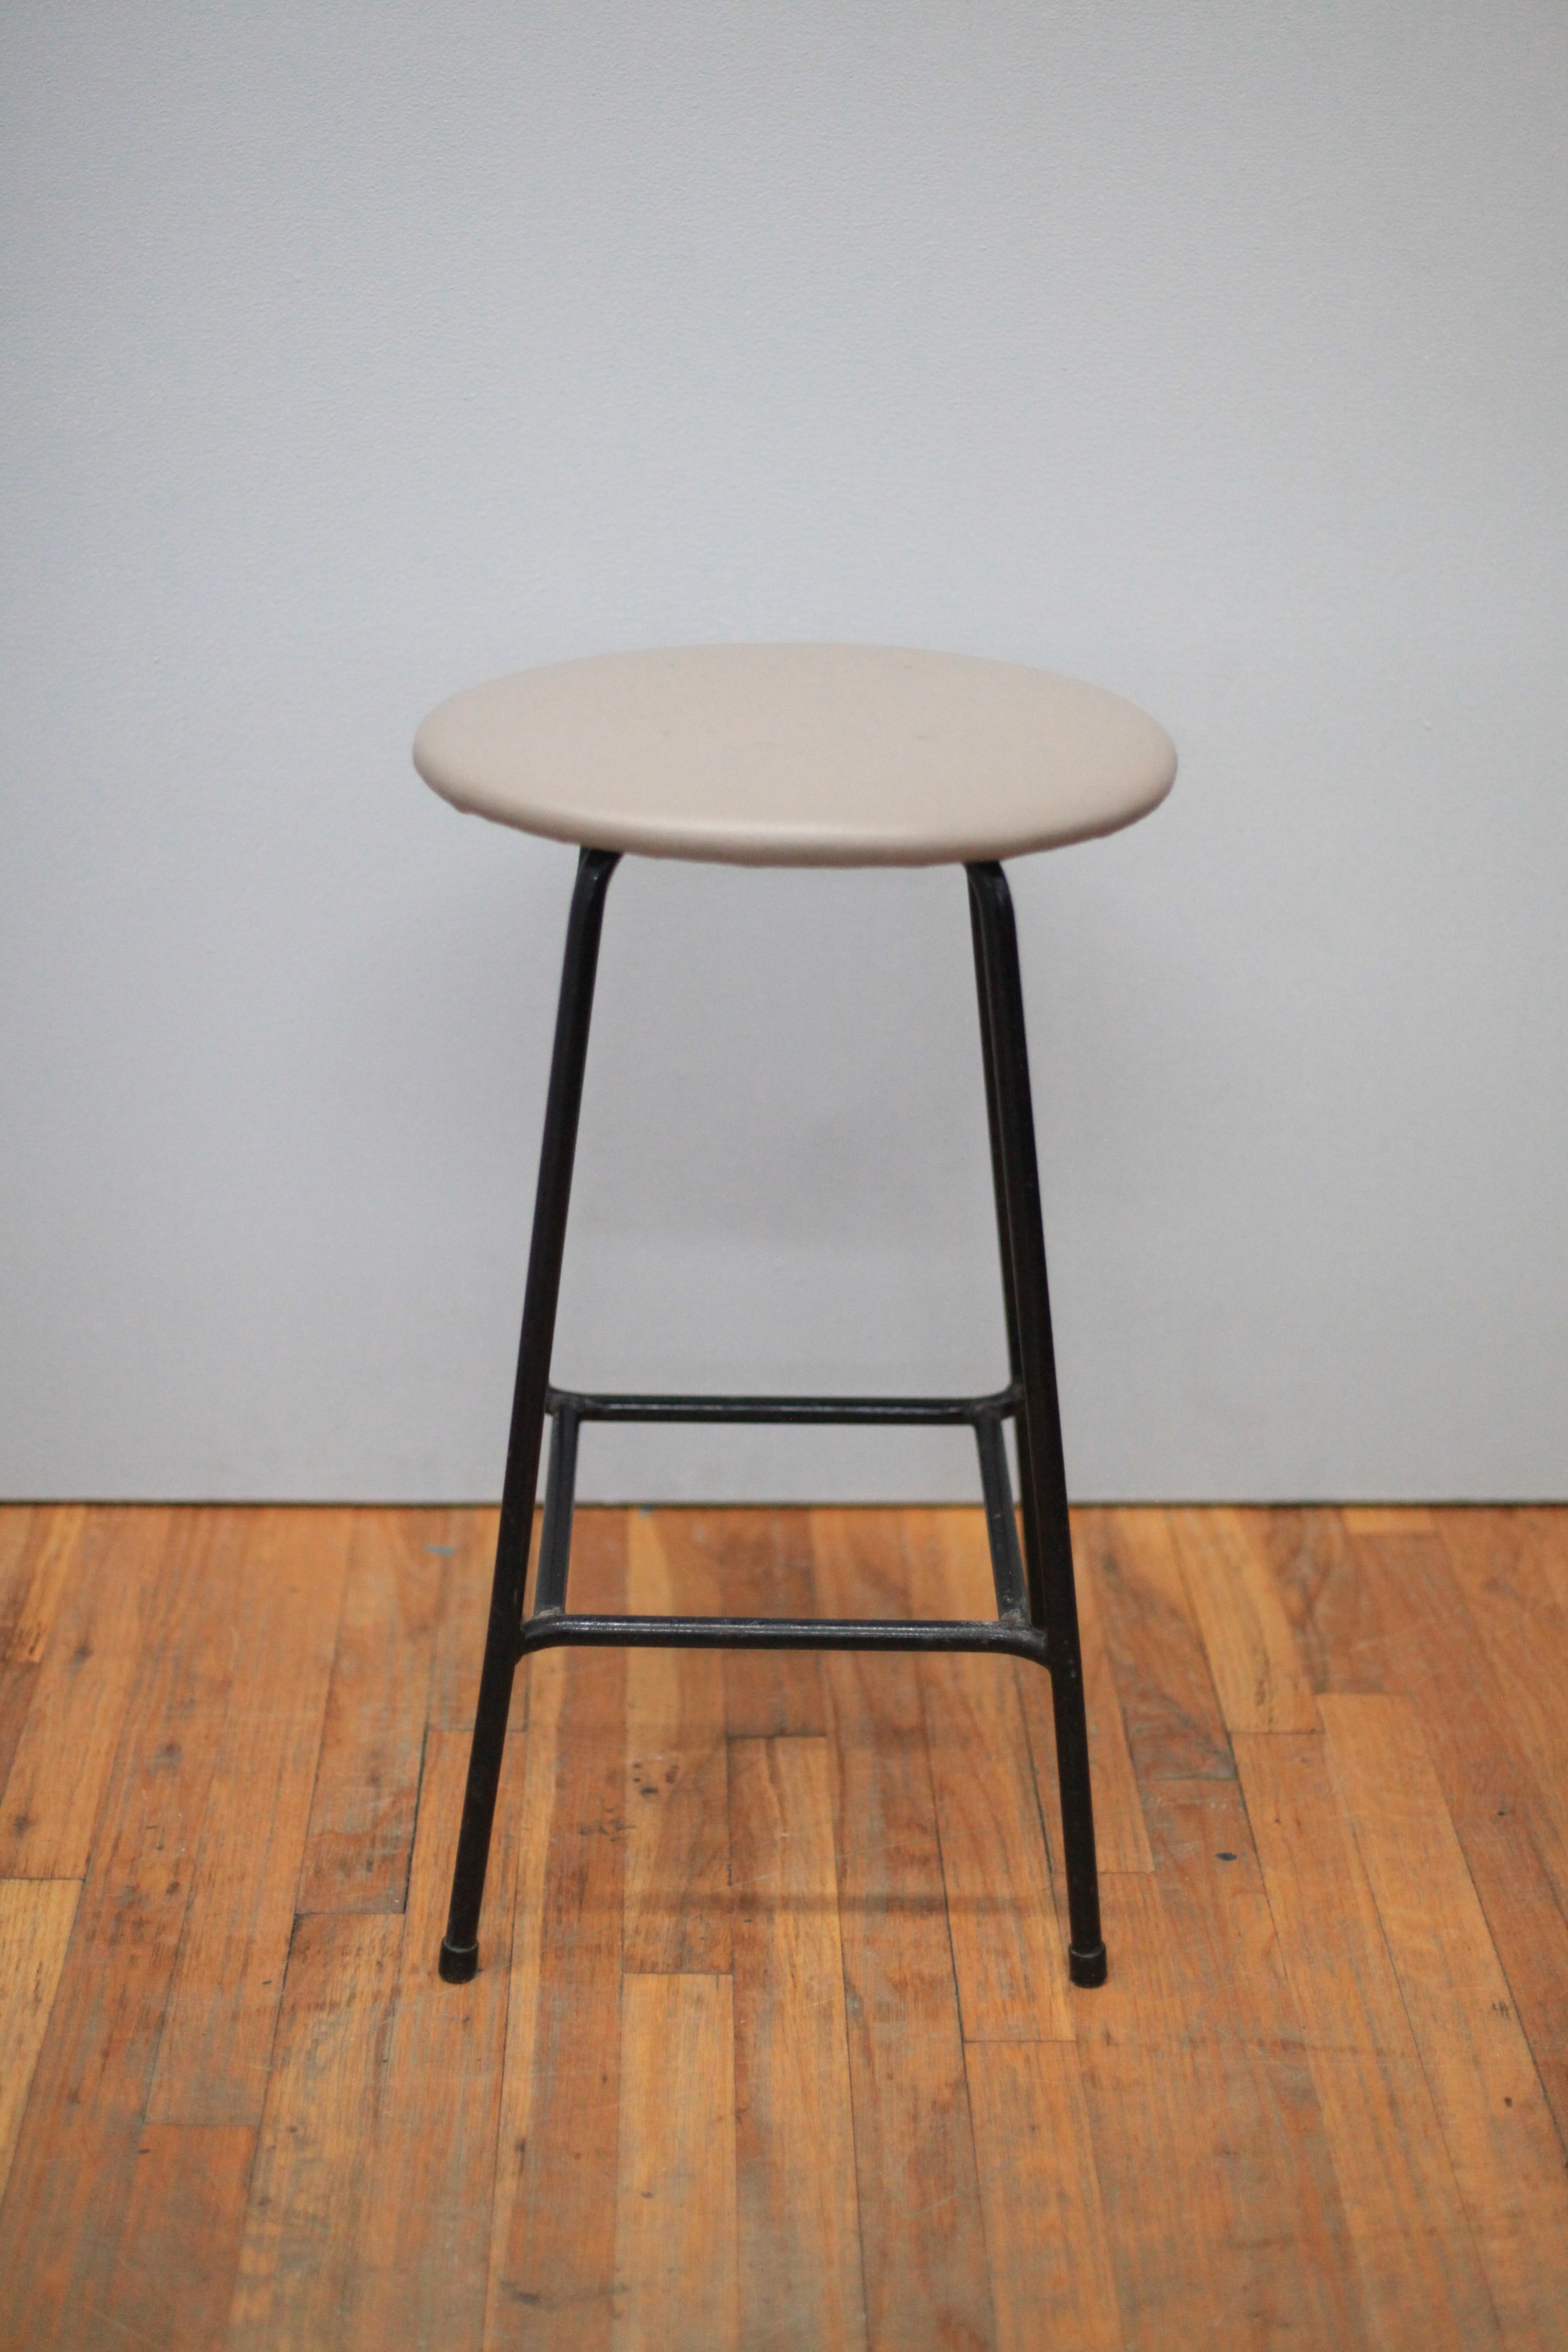 ST051  Oval seat and black steel stool  Made in USA  $150